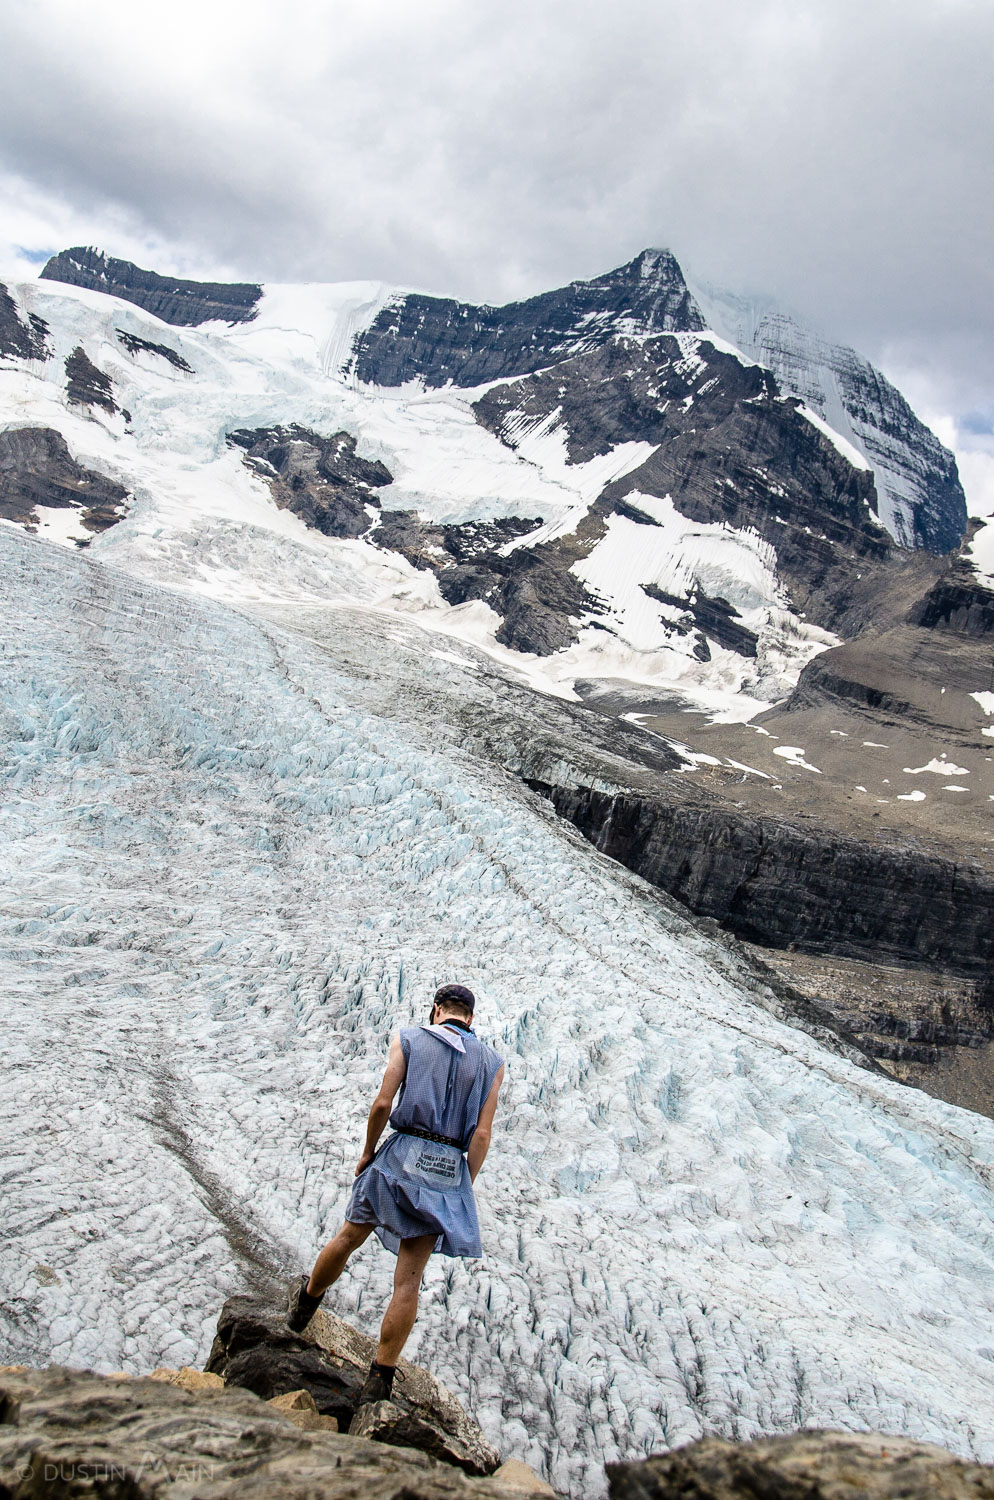 On the edge of a cliff, l ooking out over the massive Robson Glacier, with Mt Robson (the highest mountain in the Canadian Rockies) in the background.   © Dustin Main 2012